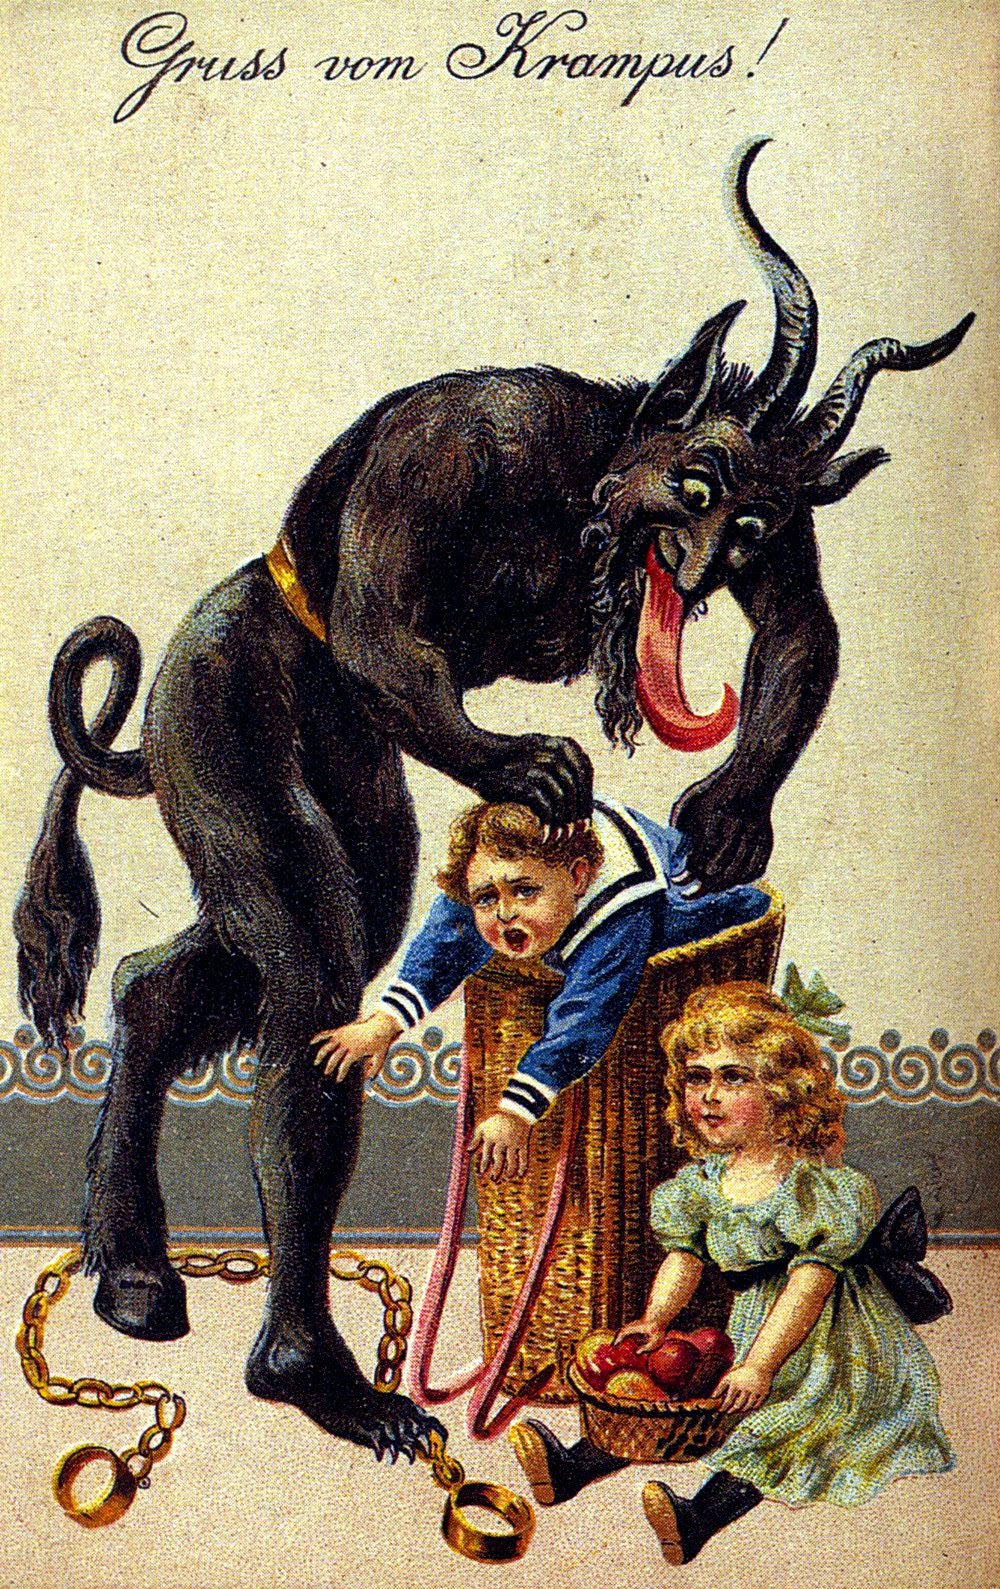 http://theoddmentemporium.tumblr.com/post/37409112386/krampus-is-a-mythical-creature-recognized-in